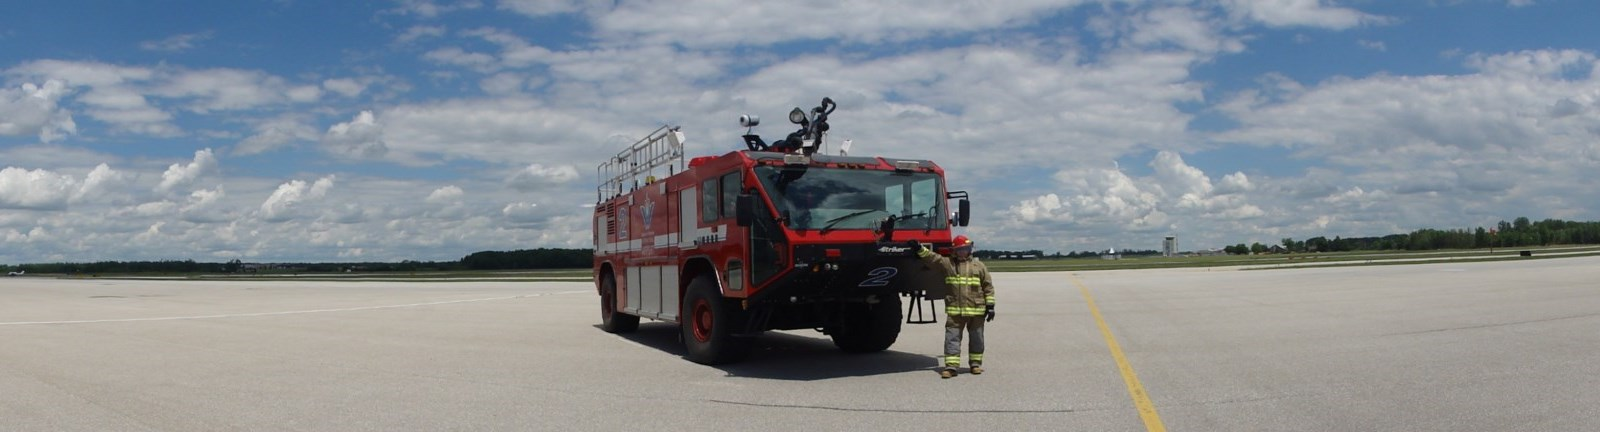 Image Airport Fire Truck & Airfield Specialist